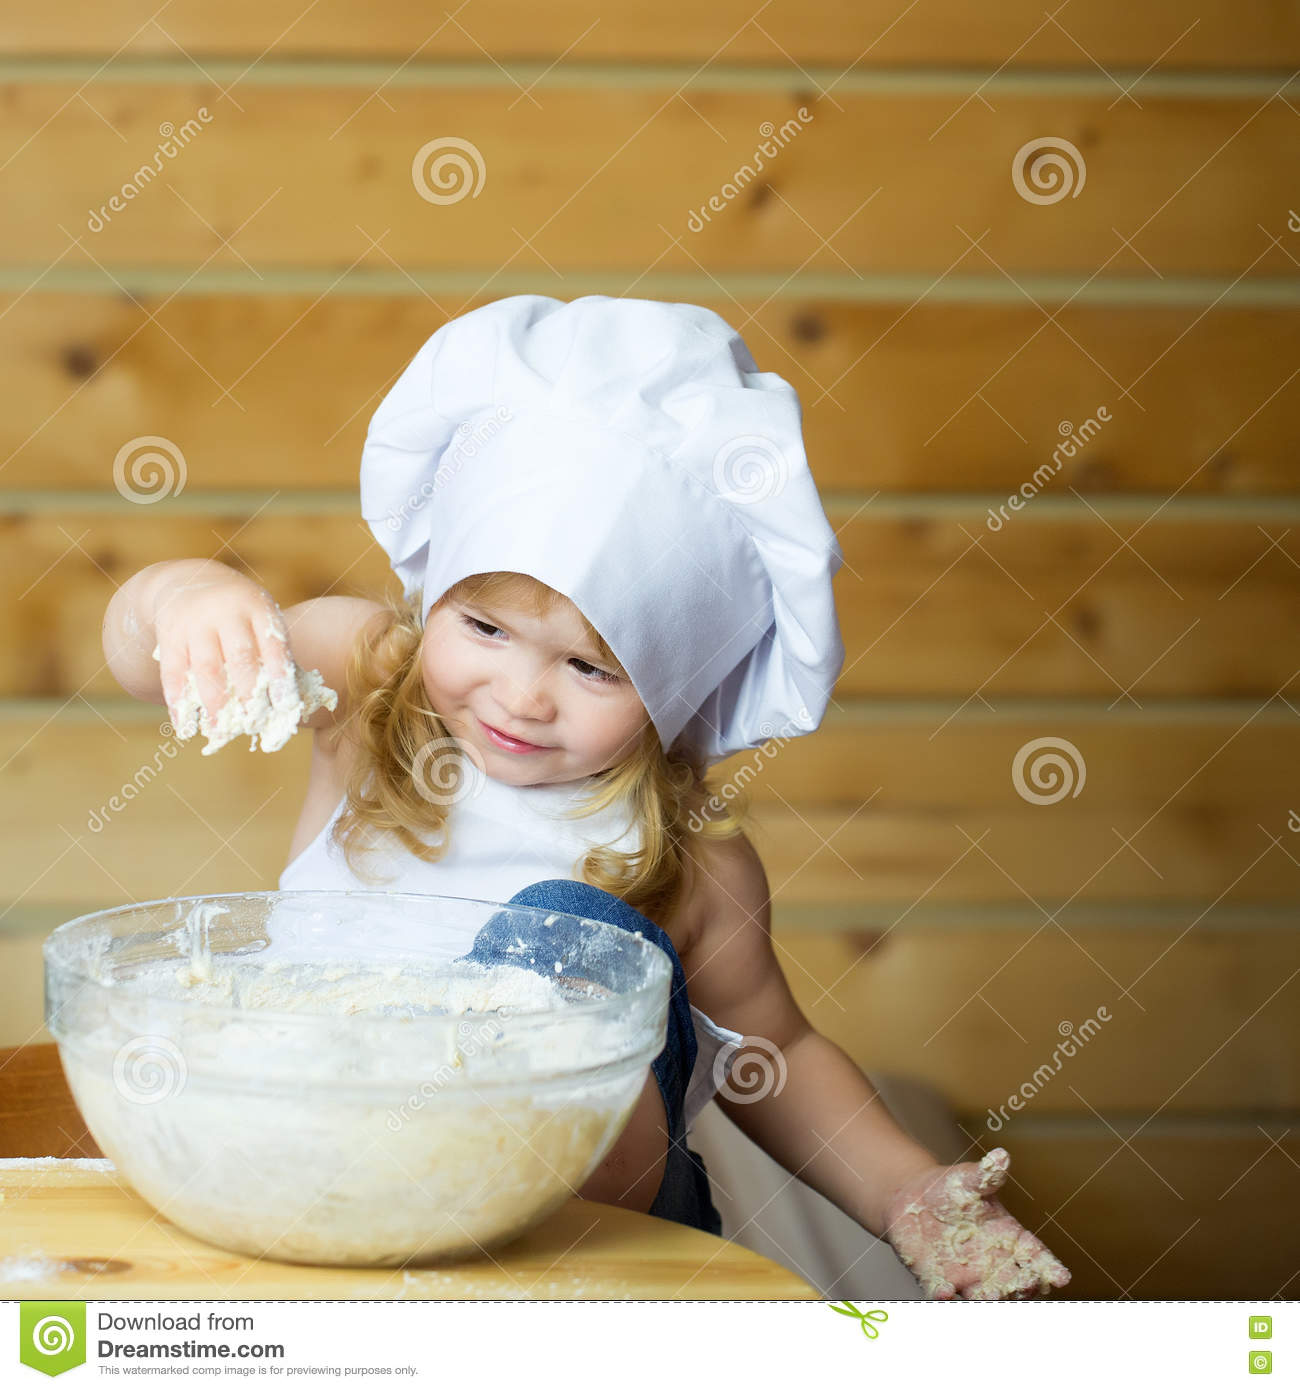 4a4c92efe Small cute baby boy or child with happy face in white cook uniform with chef  hat and apron kneading dough with flour in glass bowl in kitchen on wooden  or ...